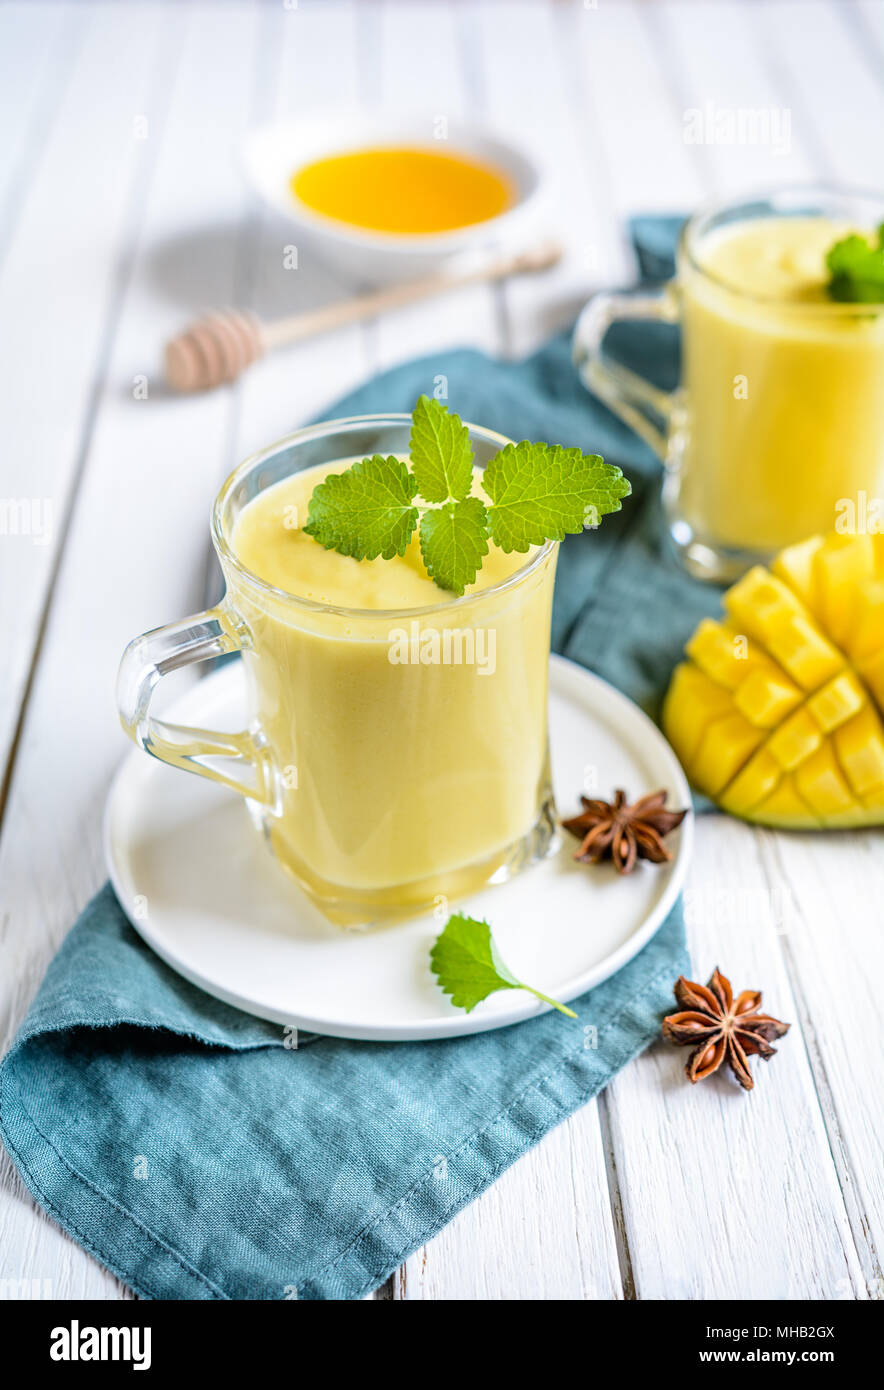 Mango Lassi - traditional Indian yoghurt drink in a glass jars - Stock Image